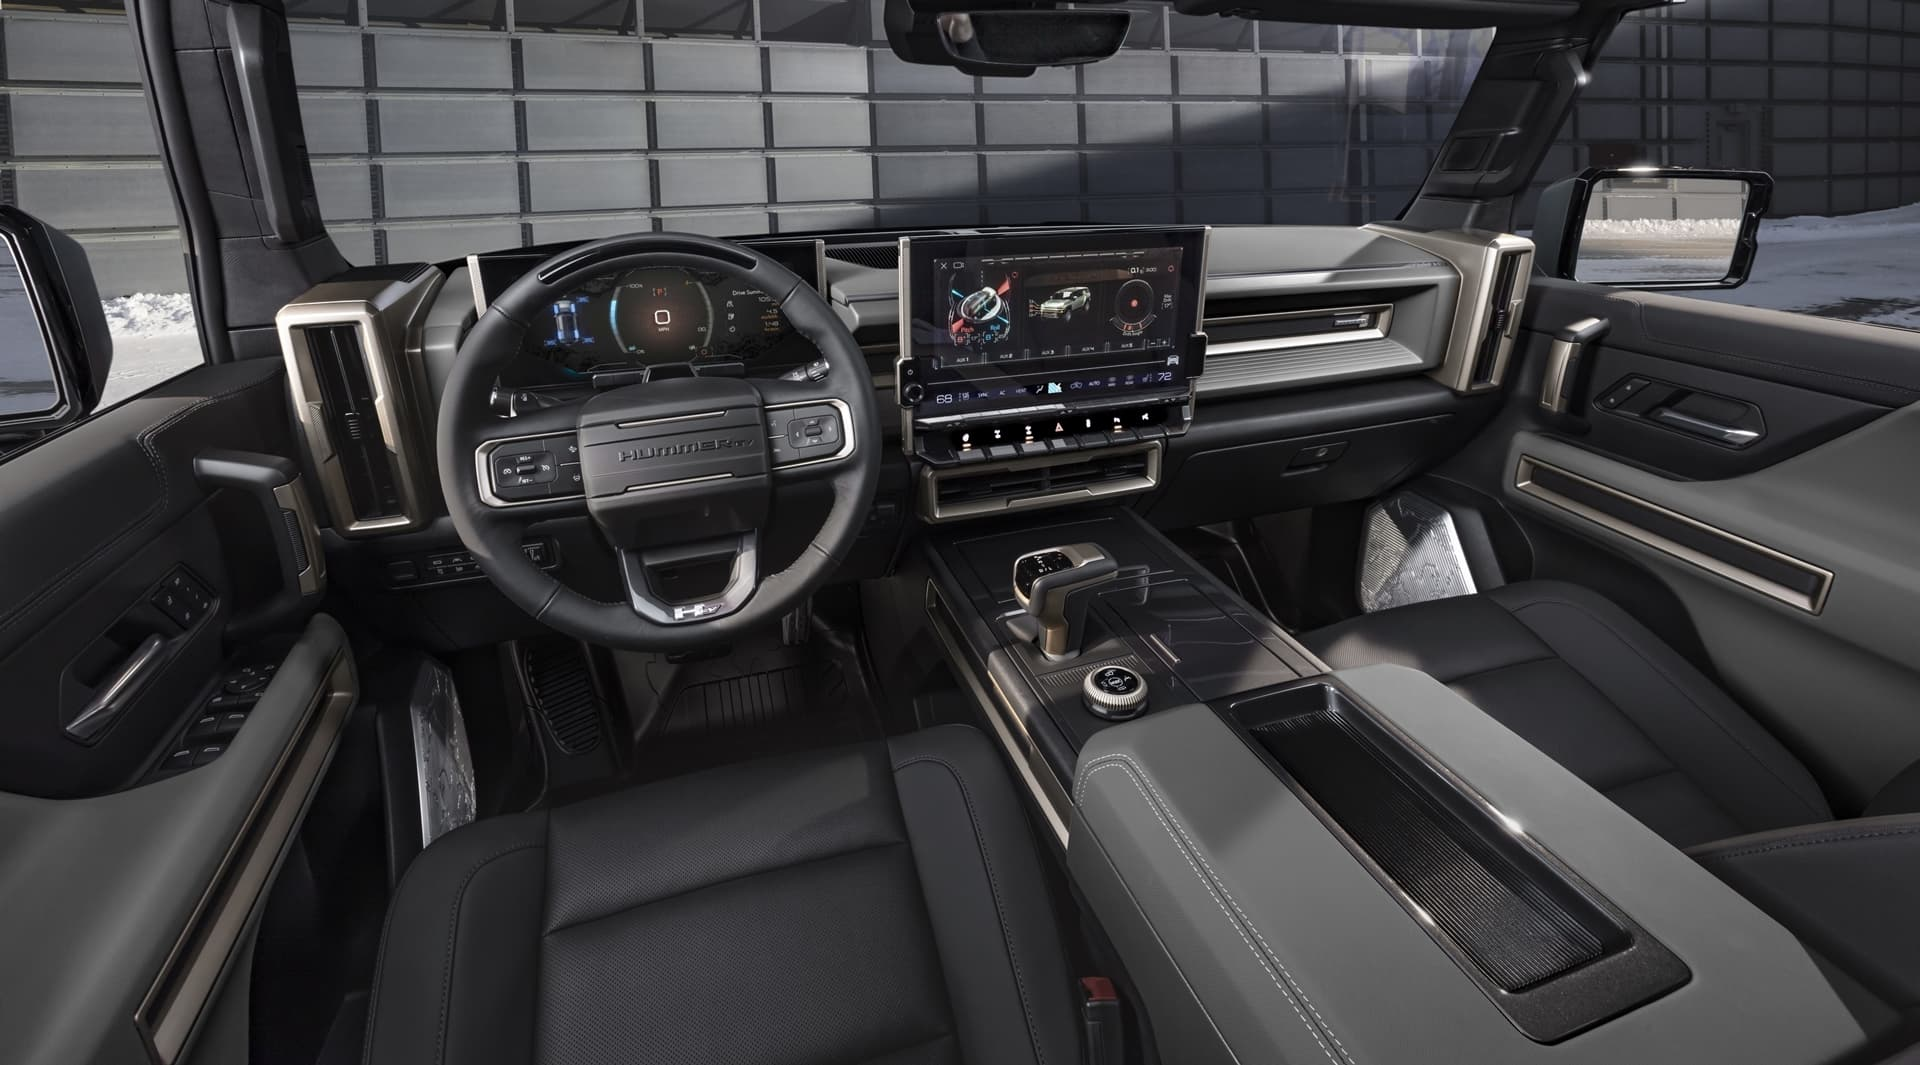 The Gmc Hummer Ev Suv Debuts In The Low Contrast Lunar Shadow Interior And Includes A Spacious Cargo Area And An Architecturally Inspired Cabin.